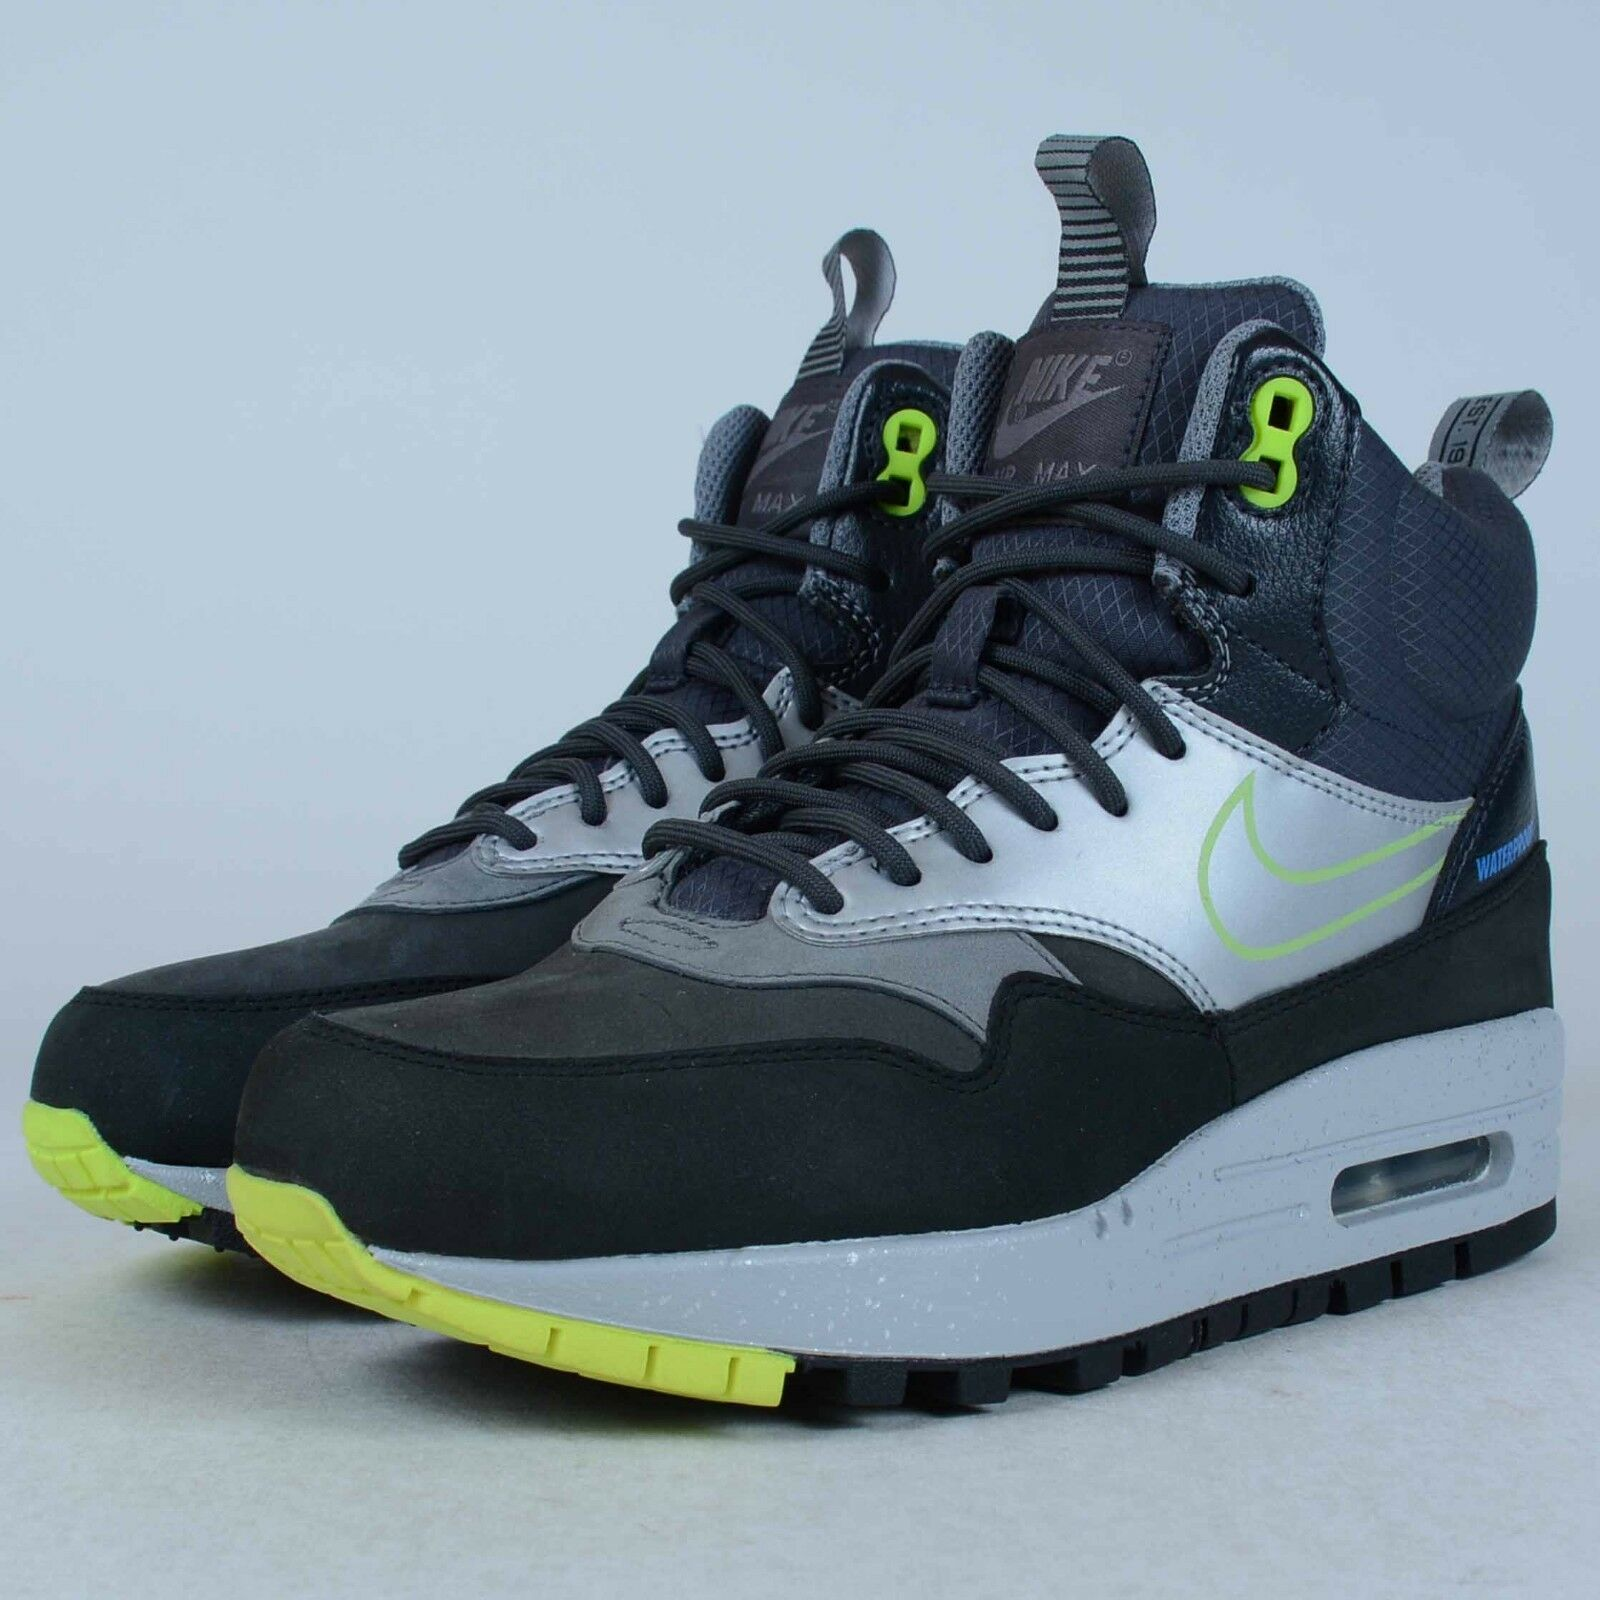 NIKE WOMENS AIR MAX 1 MID SNEAKERBOOT WP BLACK VOLT 685269 002 SZ 5.5 DEFECT